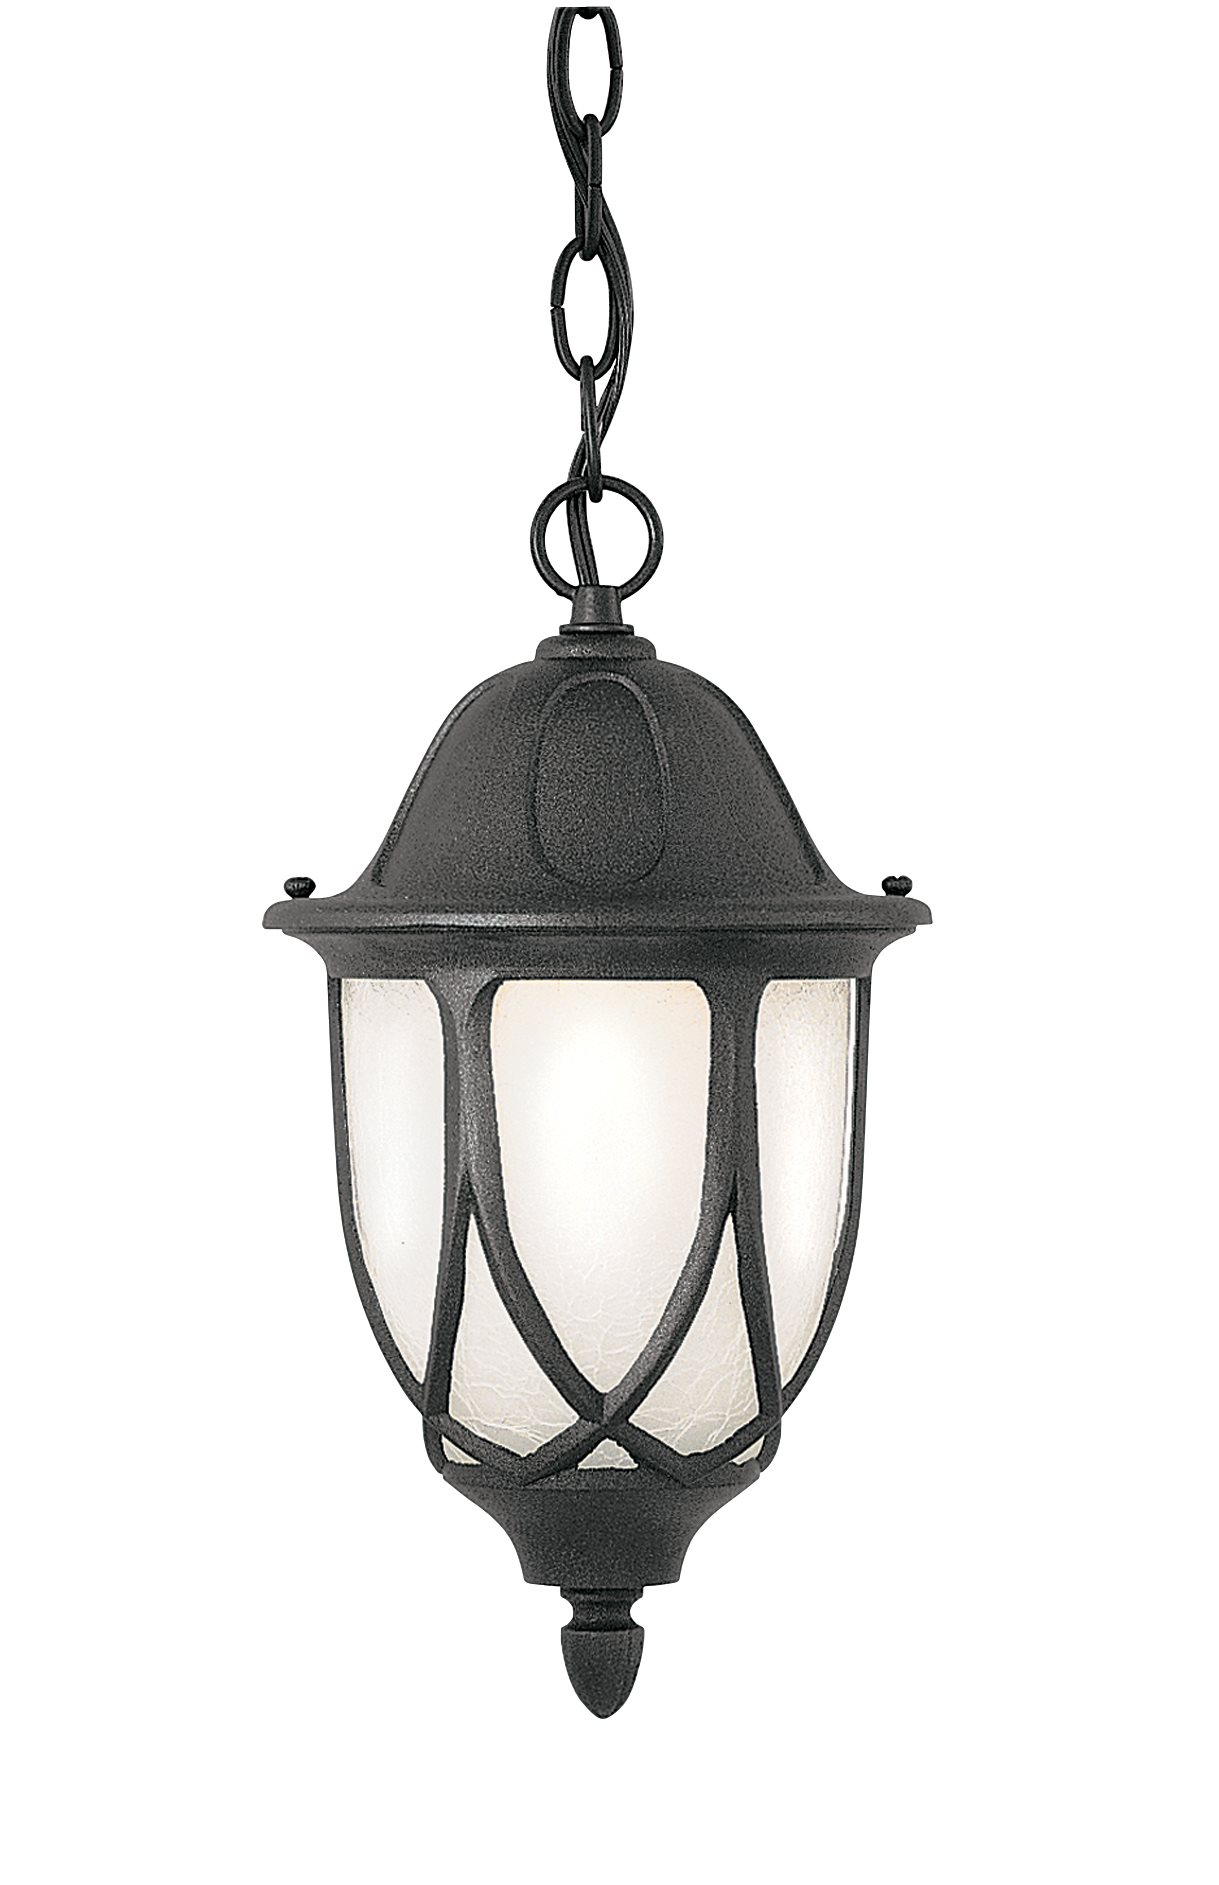 Designers Fountain T2864cfl Bk Capella Energy Efficient Traditional Outdoor Pendant Light Df